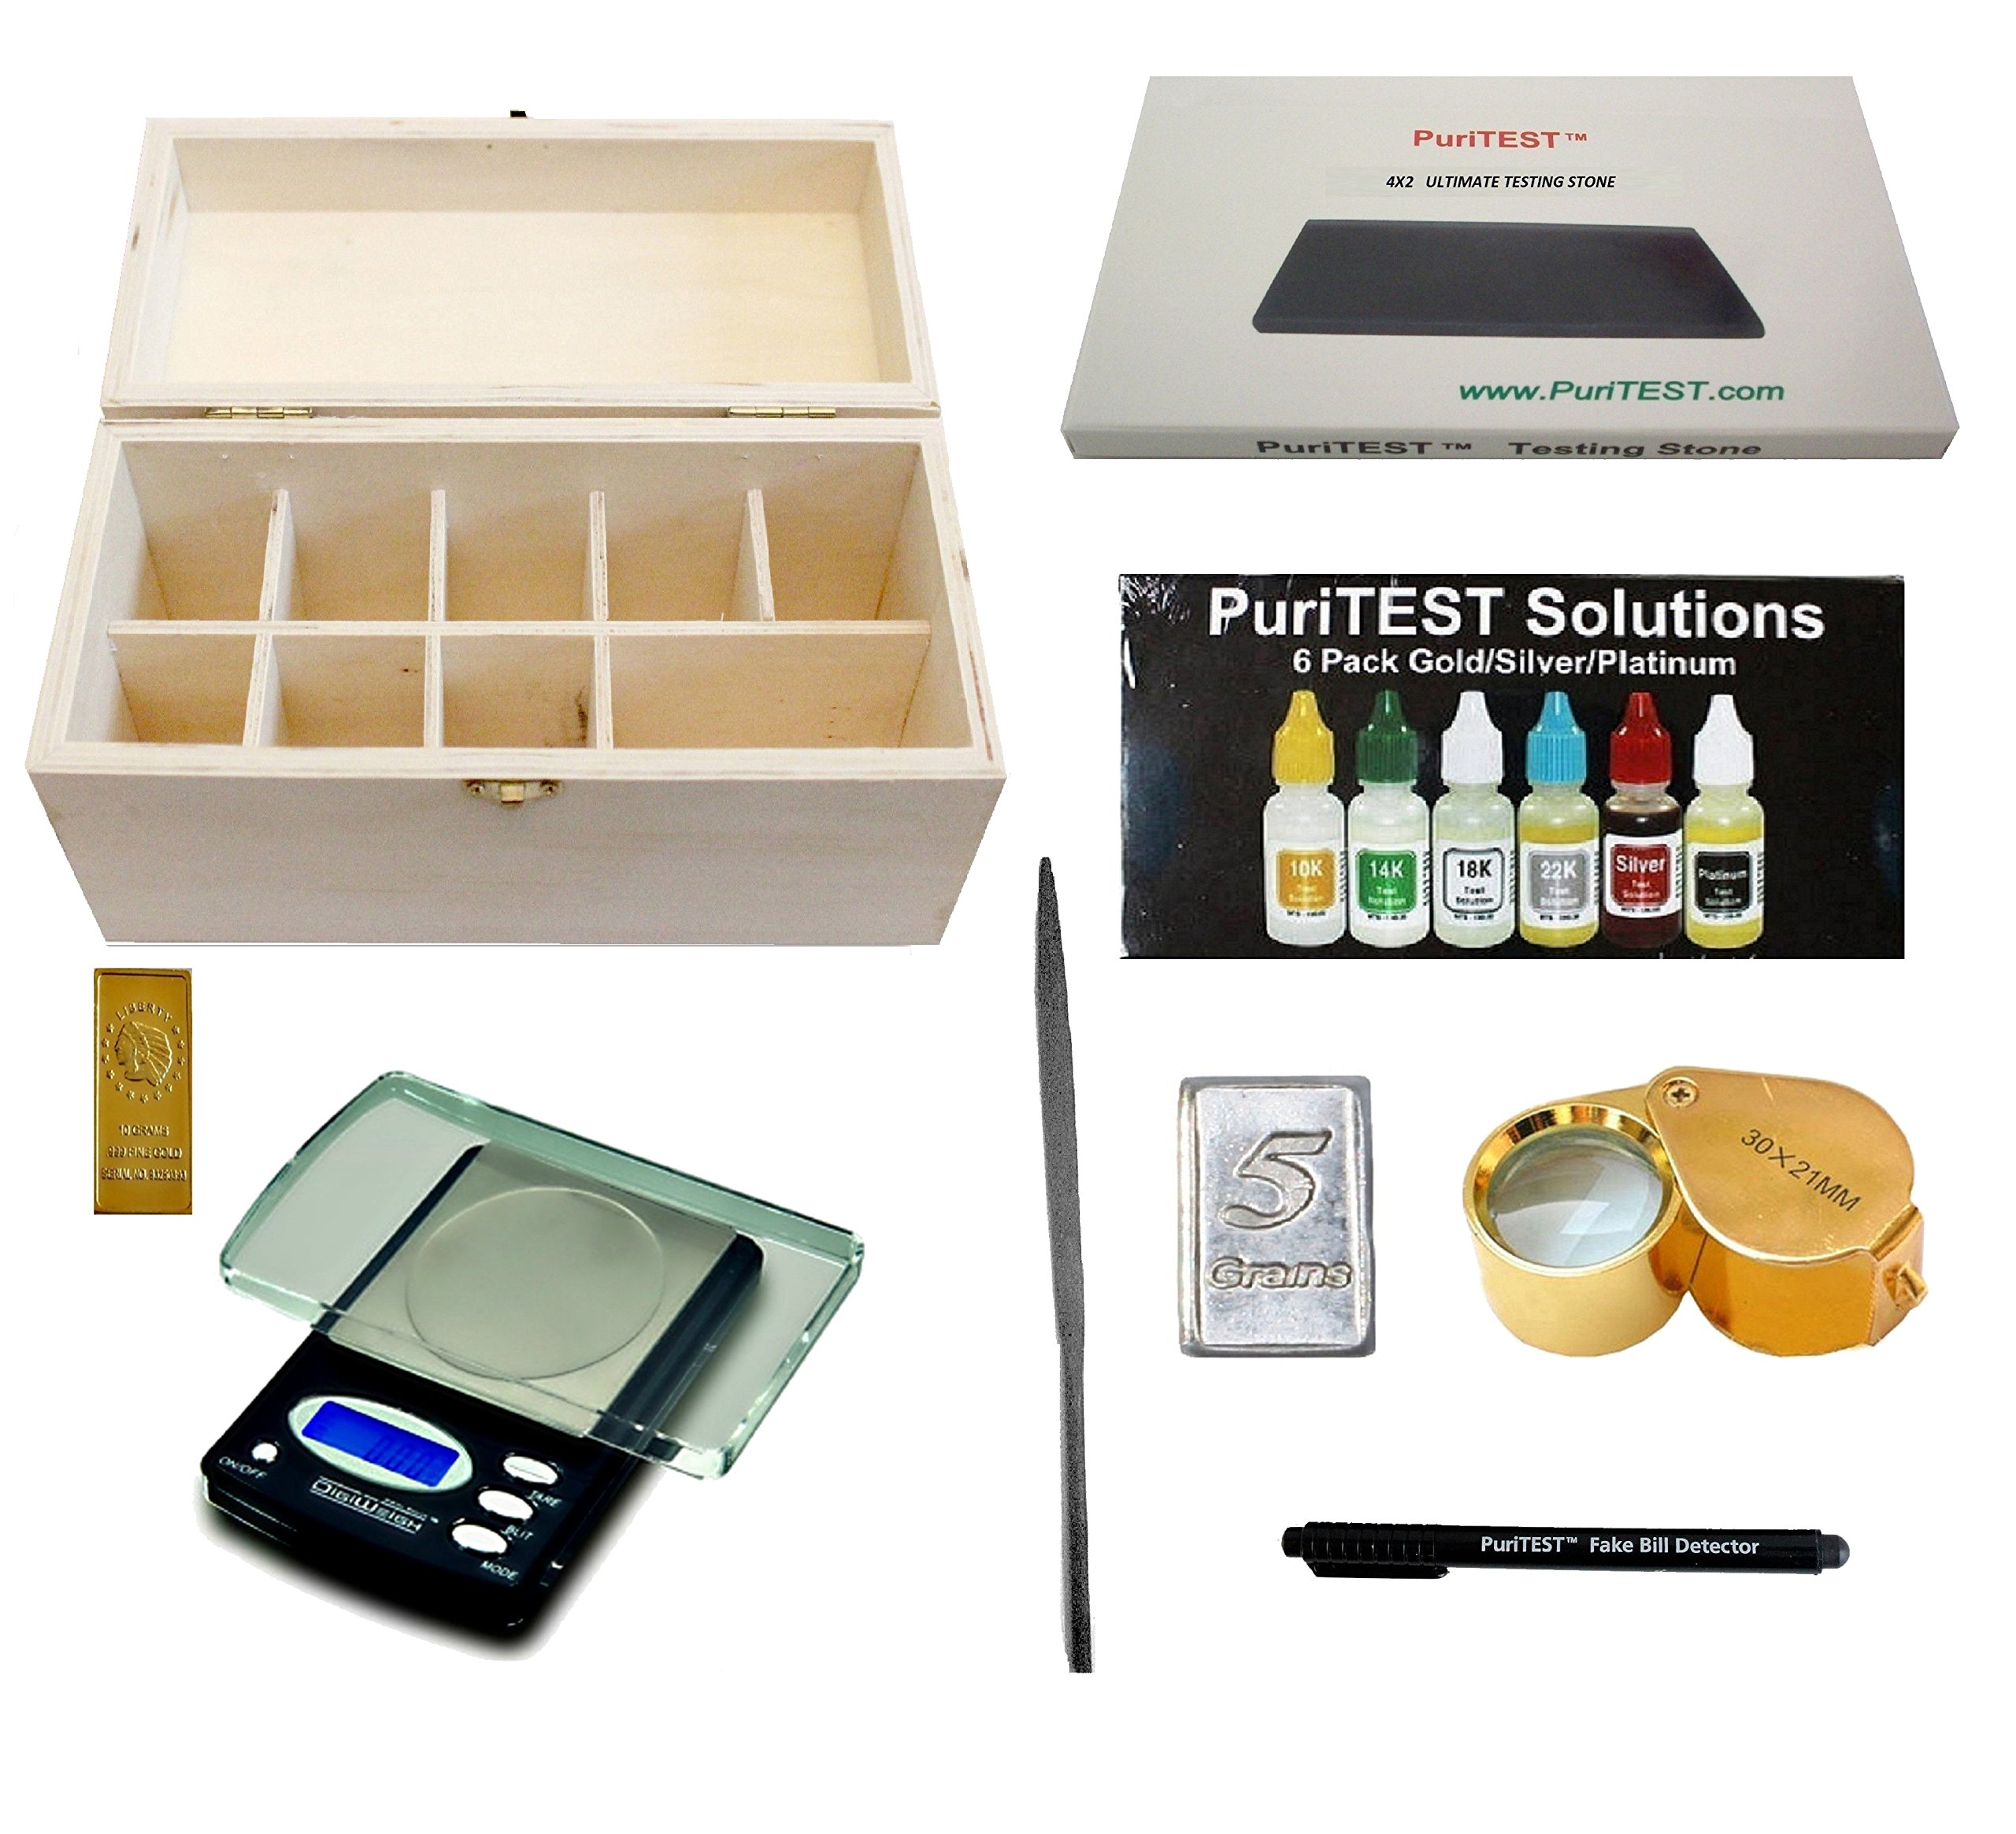 10k 14k 18k Gold Silver 999 Acid Test Kit 24 Tool Jewel Silver Platinum Stones G Coins & Paper Money Other Jewelry Tools